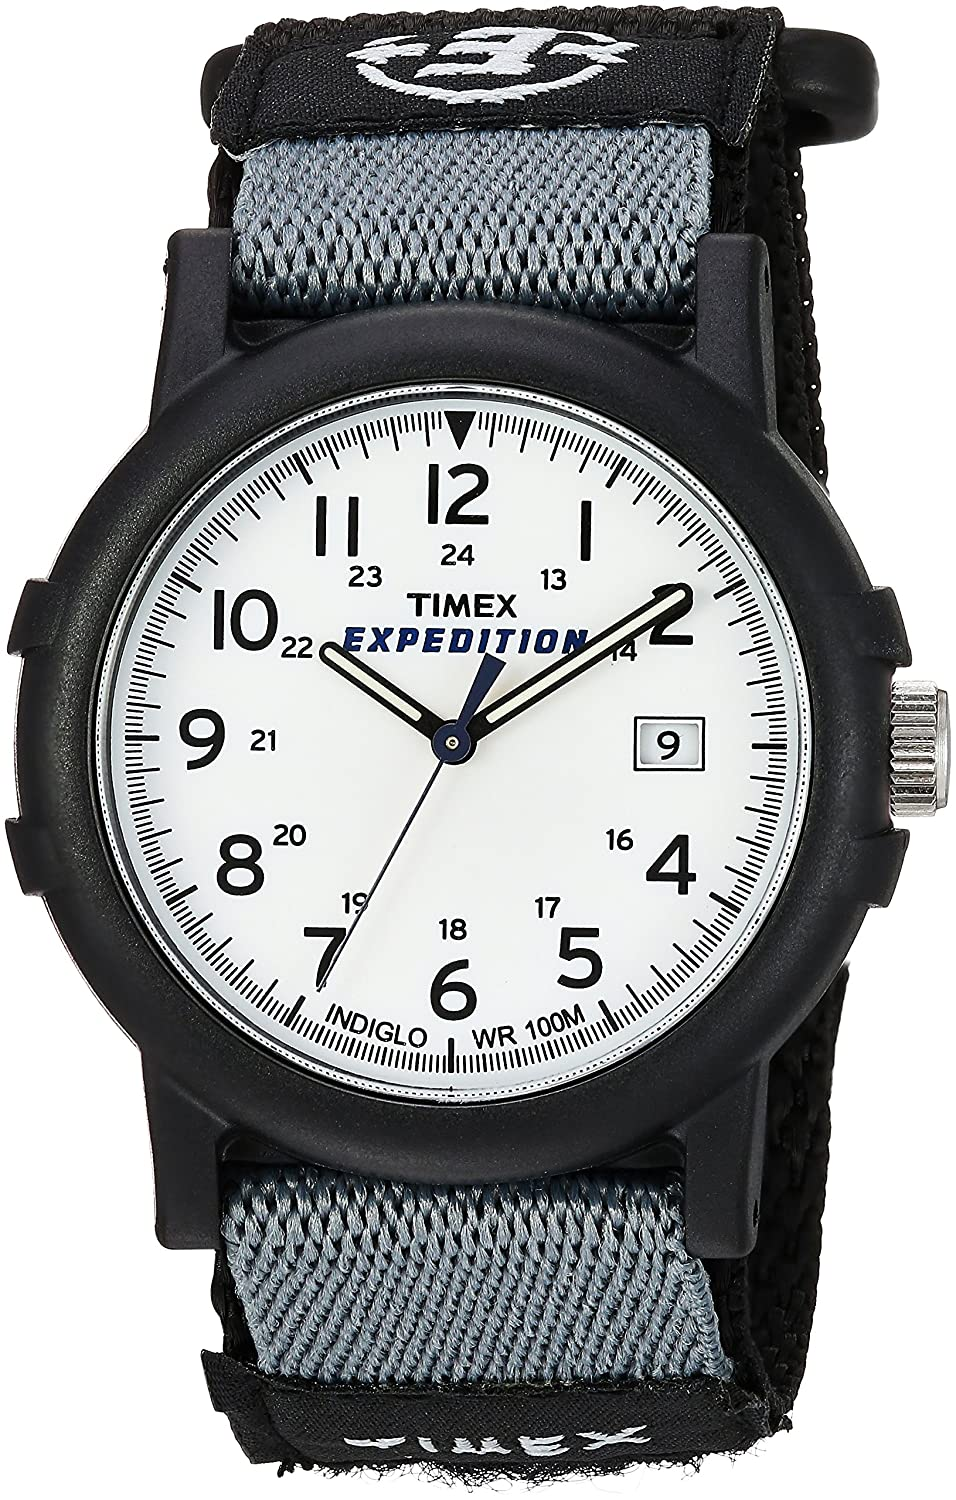 com in price men analogue watch watches india june black mini timex buybesto